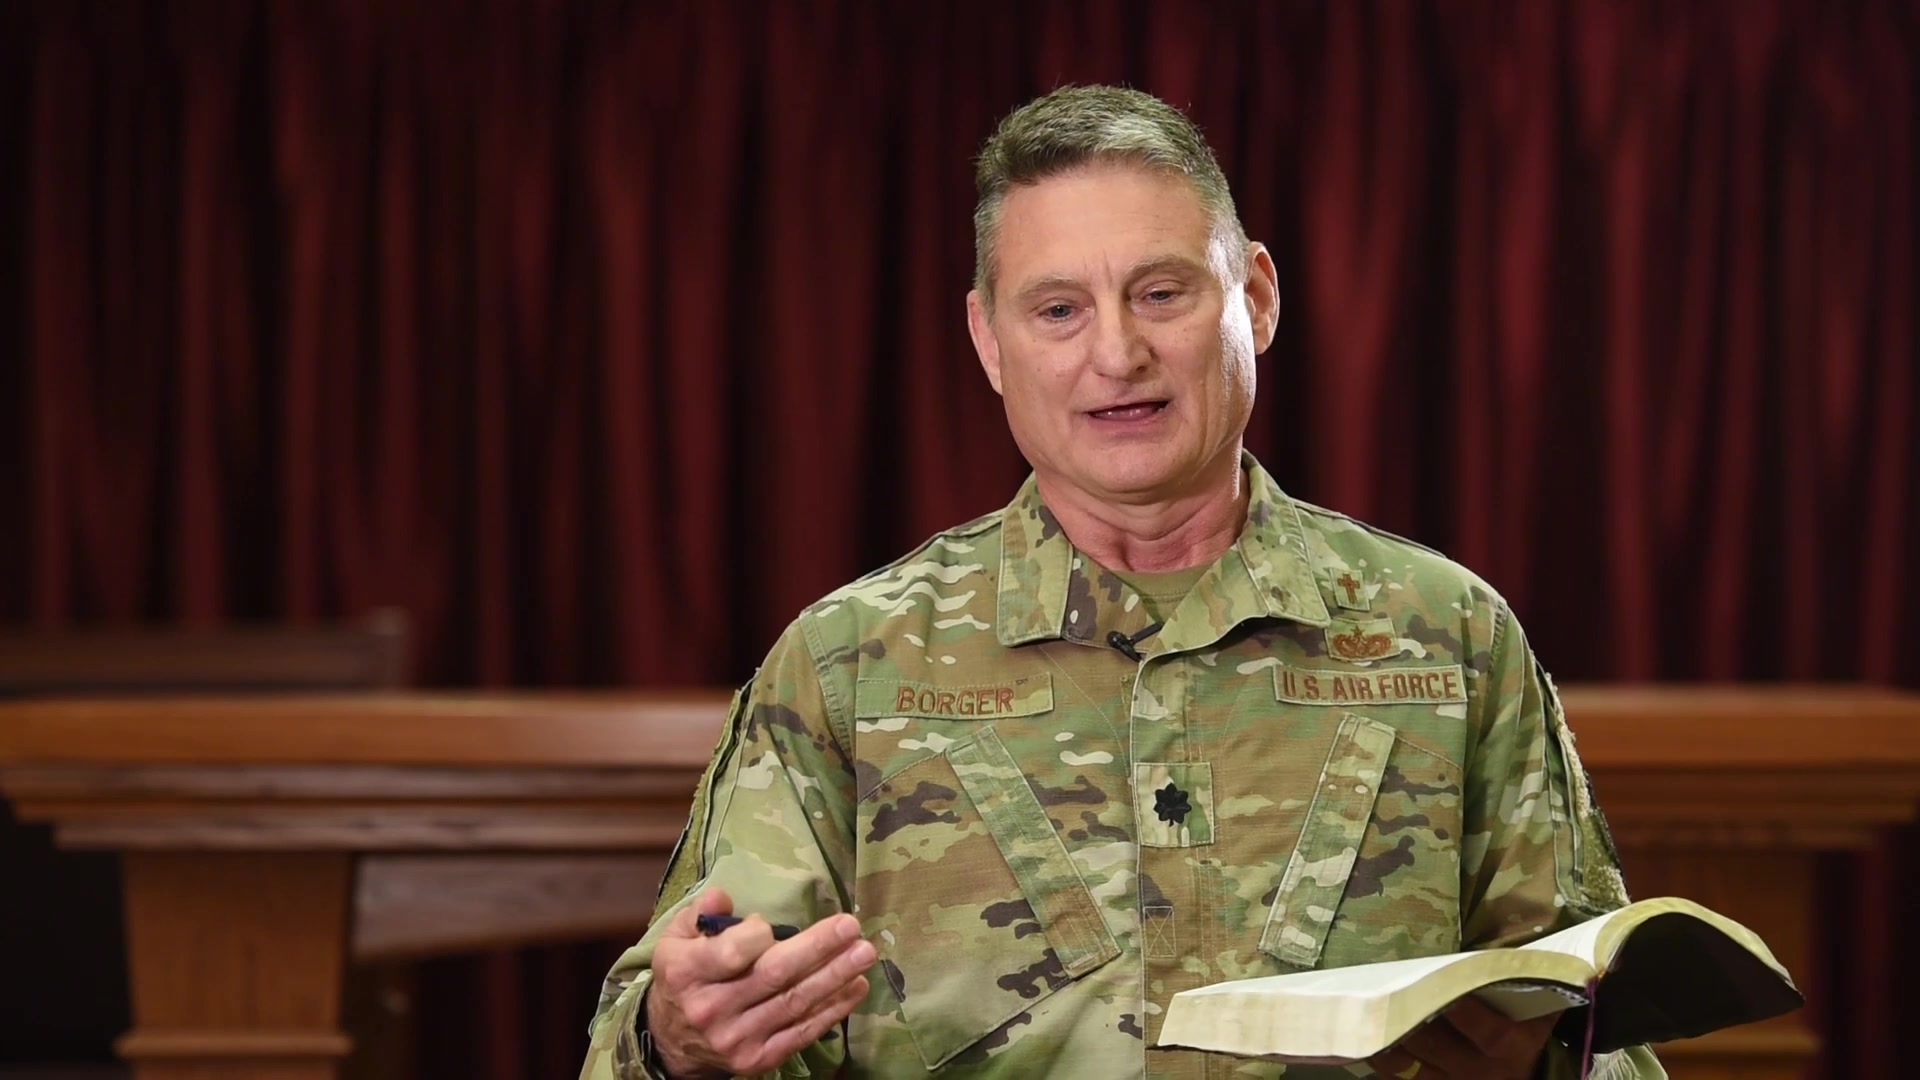 Here's another inspirational message from 17th Training Wing Chaplain, Lt. Col. Bob Borger to help us navigate these challenging times.